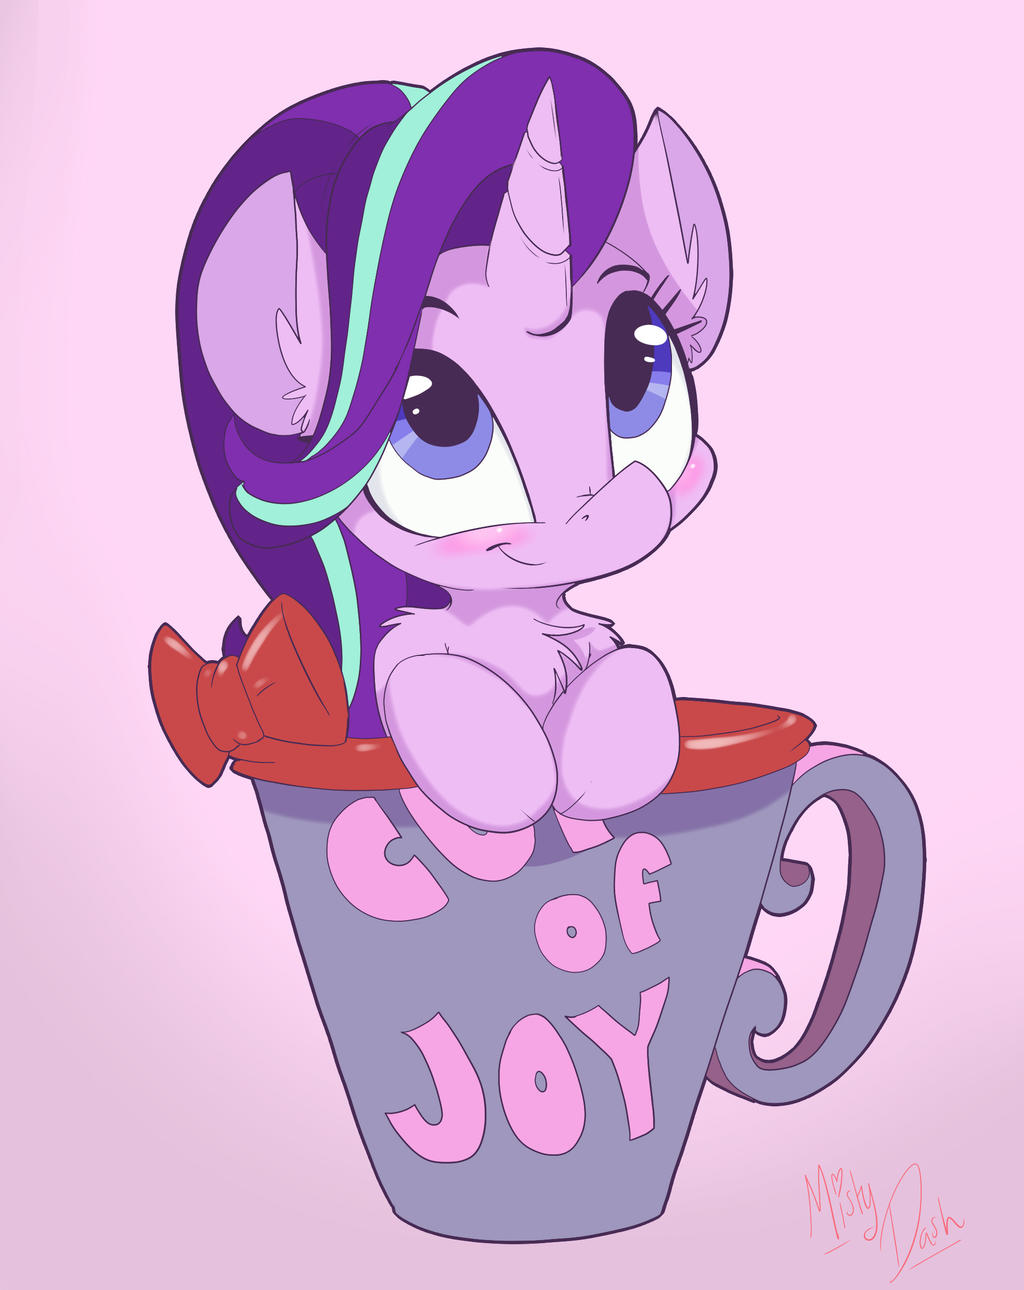 starlight_in_a_cup_by_mistyedash_dbeuj2b